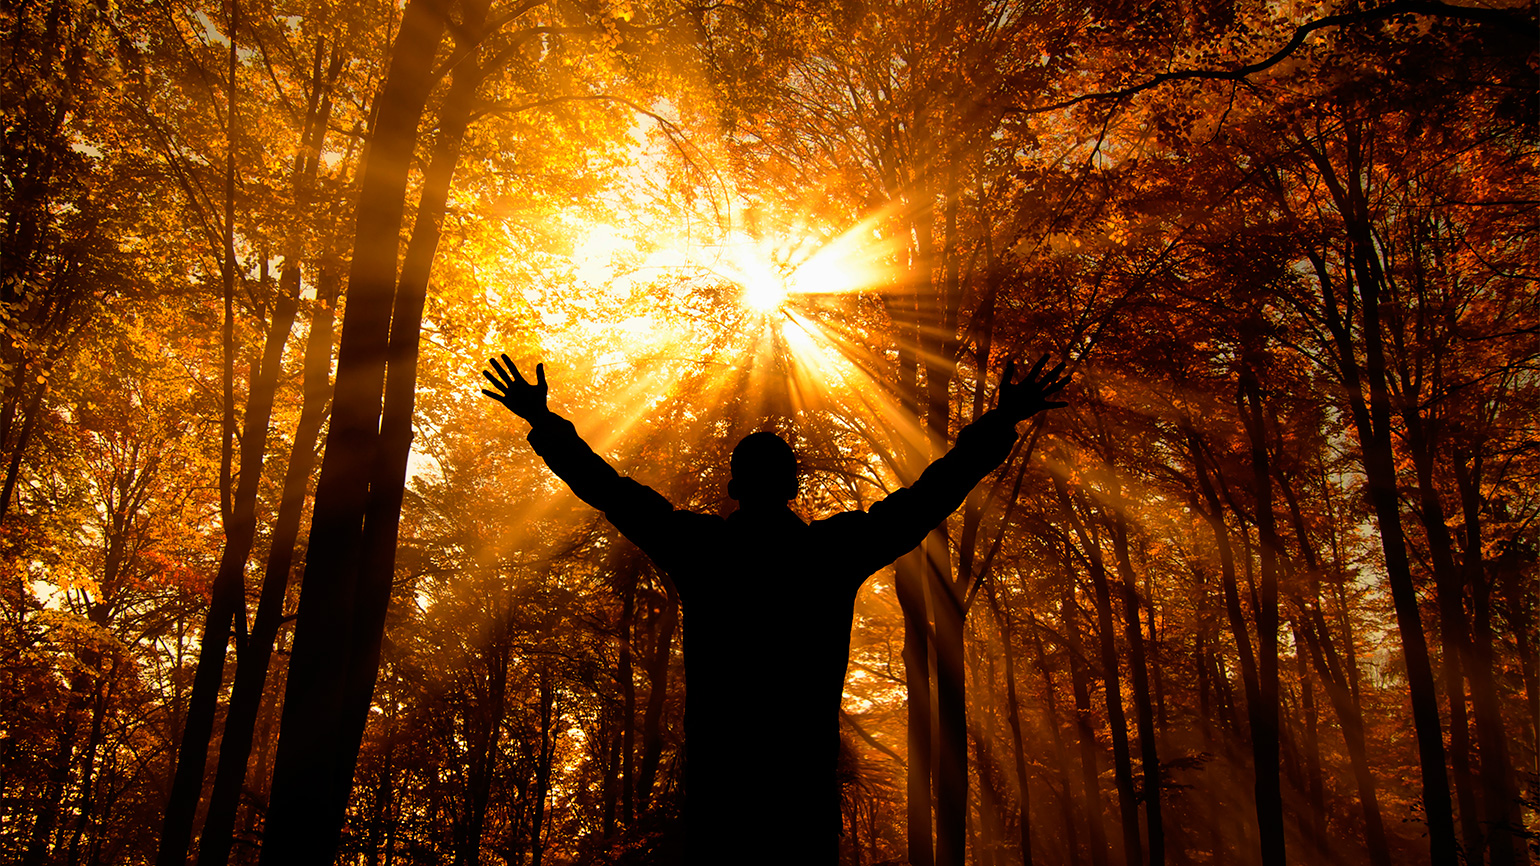 Man facing the sun with outstretched arms